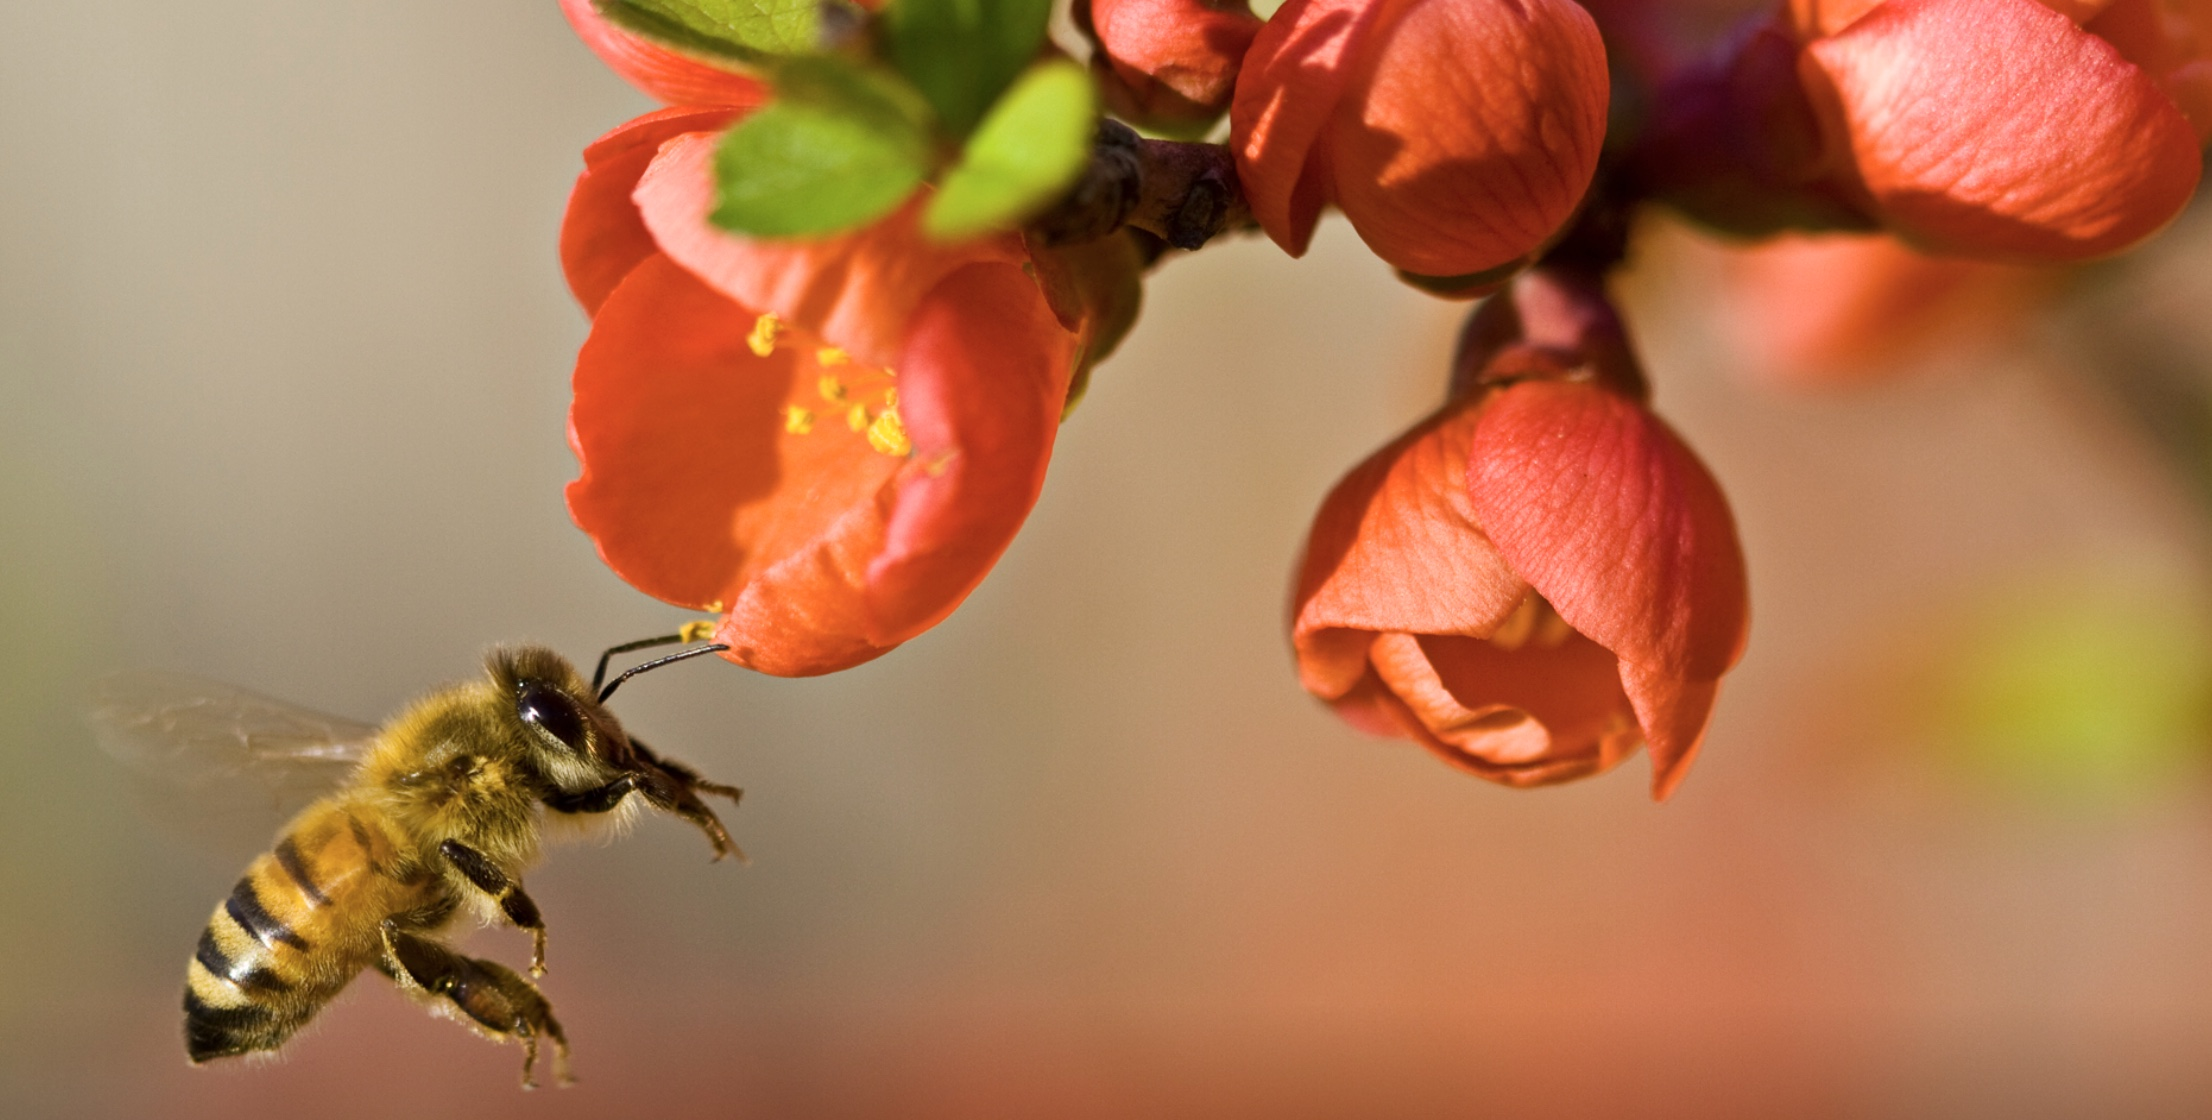 The effects of bees and pollinating insects